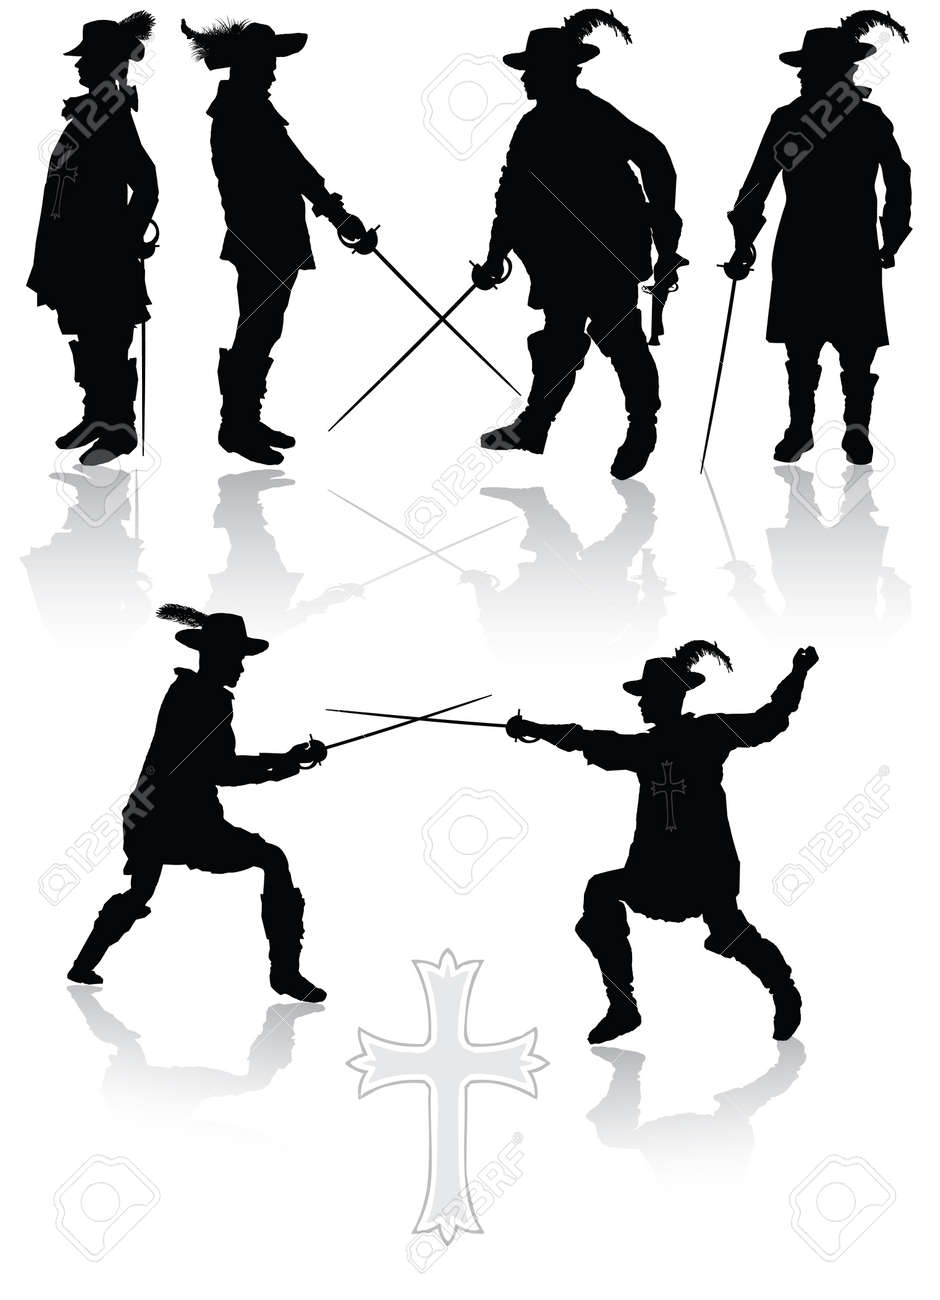 Royal musketeers collection in different poses vector illustration Stock Vector - 5633497